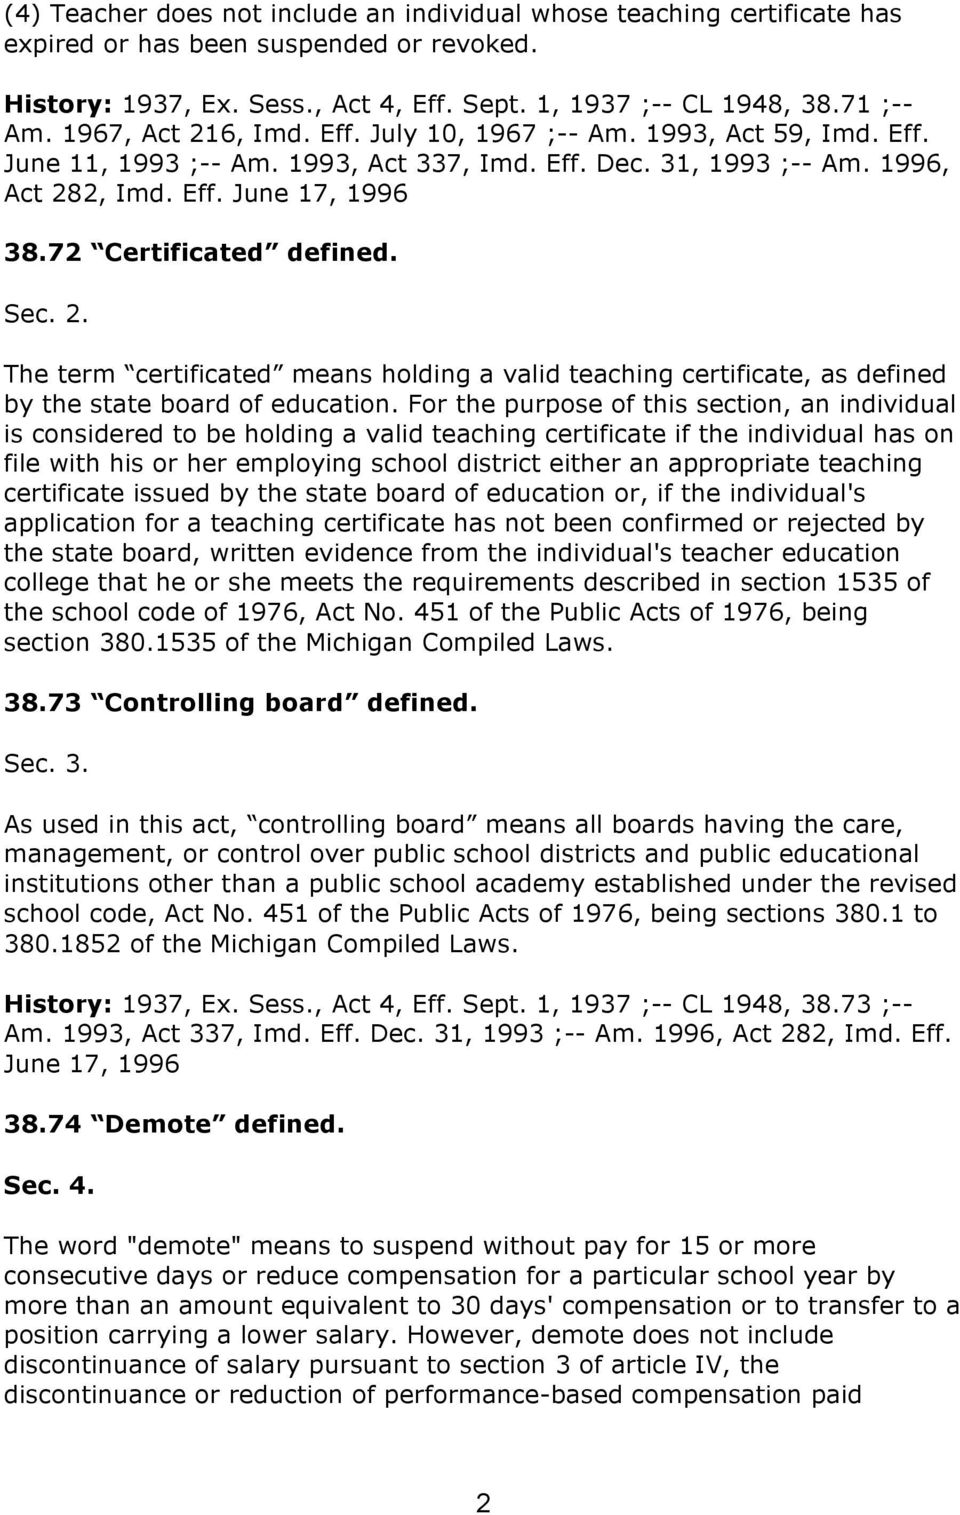 72 Certificated defined. Sec. 2. The term certificated means holding a valid teaching certificate, as defined by the state board of education.